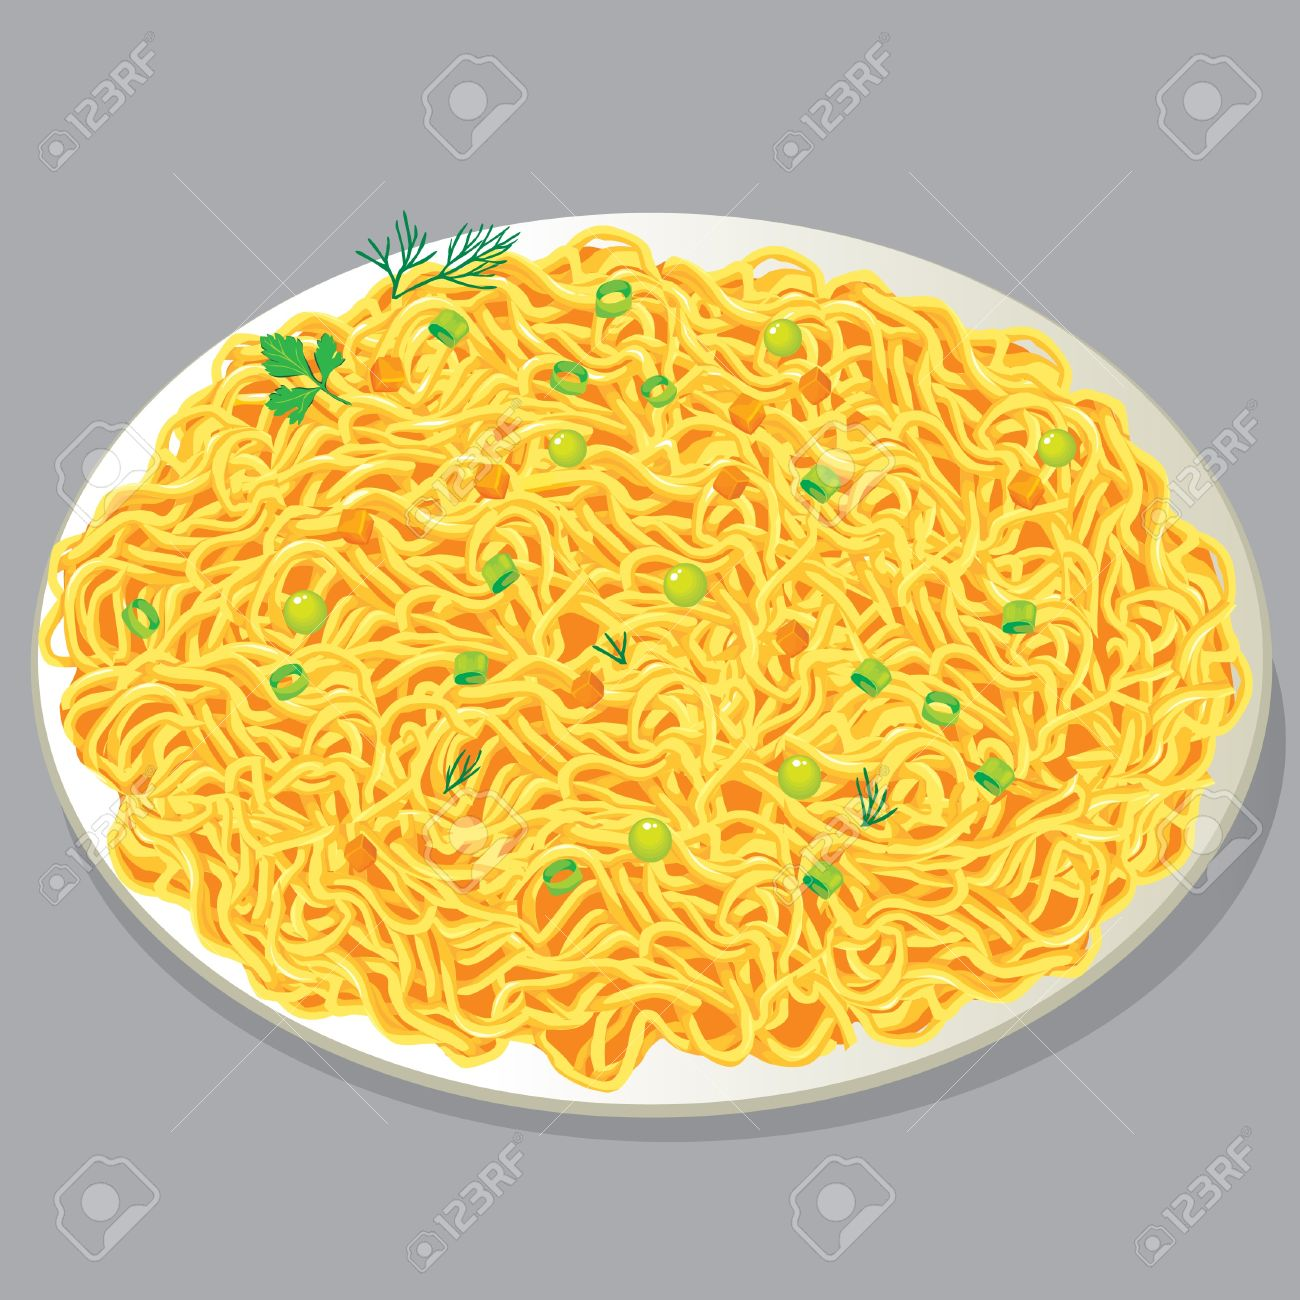 Plate Of Pasta With Vegetables Royalty Free Cliparts, Vectors, And.